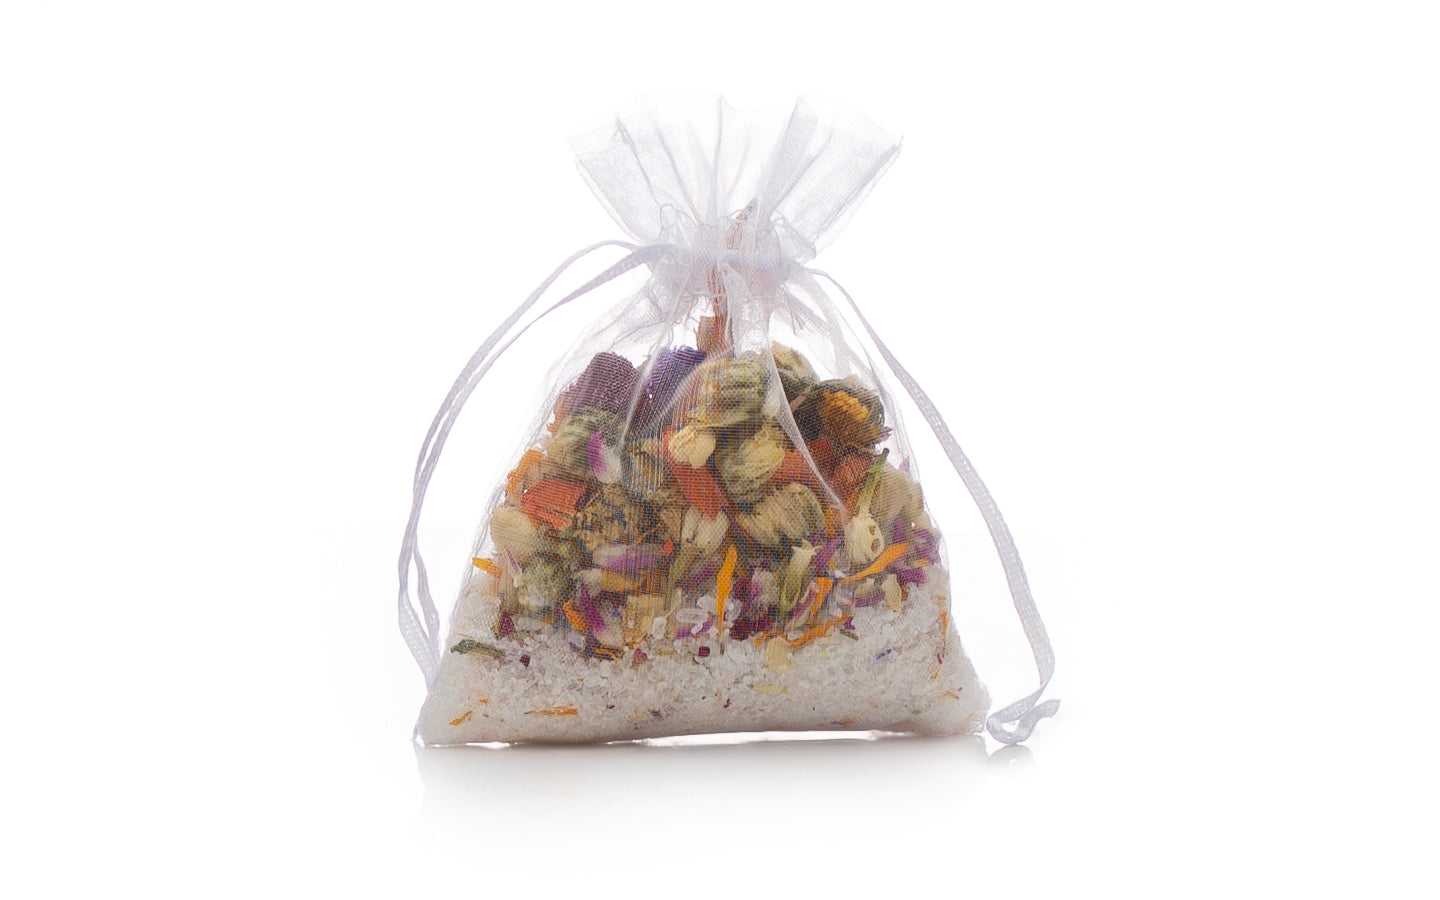 tub tea, bath soak bath salt, bath oil, lavender essential oil, peppermint essential oil, eucalyptus essential oil, plumeria essential oil, essential oils, aromatherapy, epsom salt, himalayan sea salts, jasmine, lily, hibiscus, marigold, myosotis, chrysanthemum, rose buds